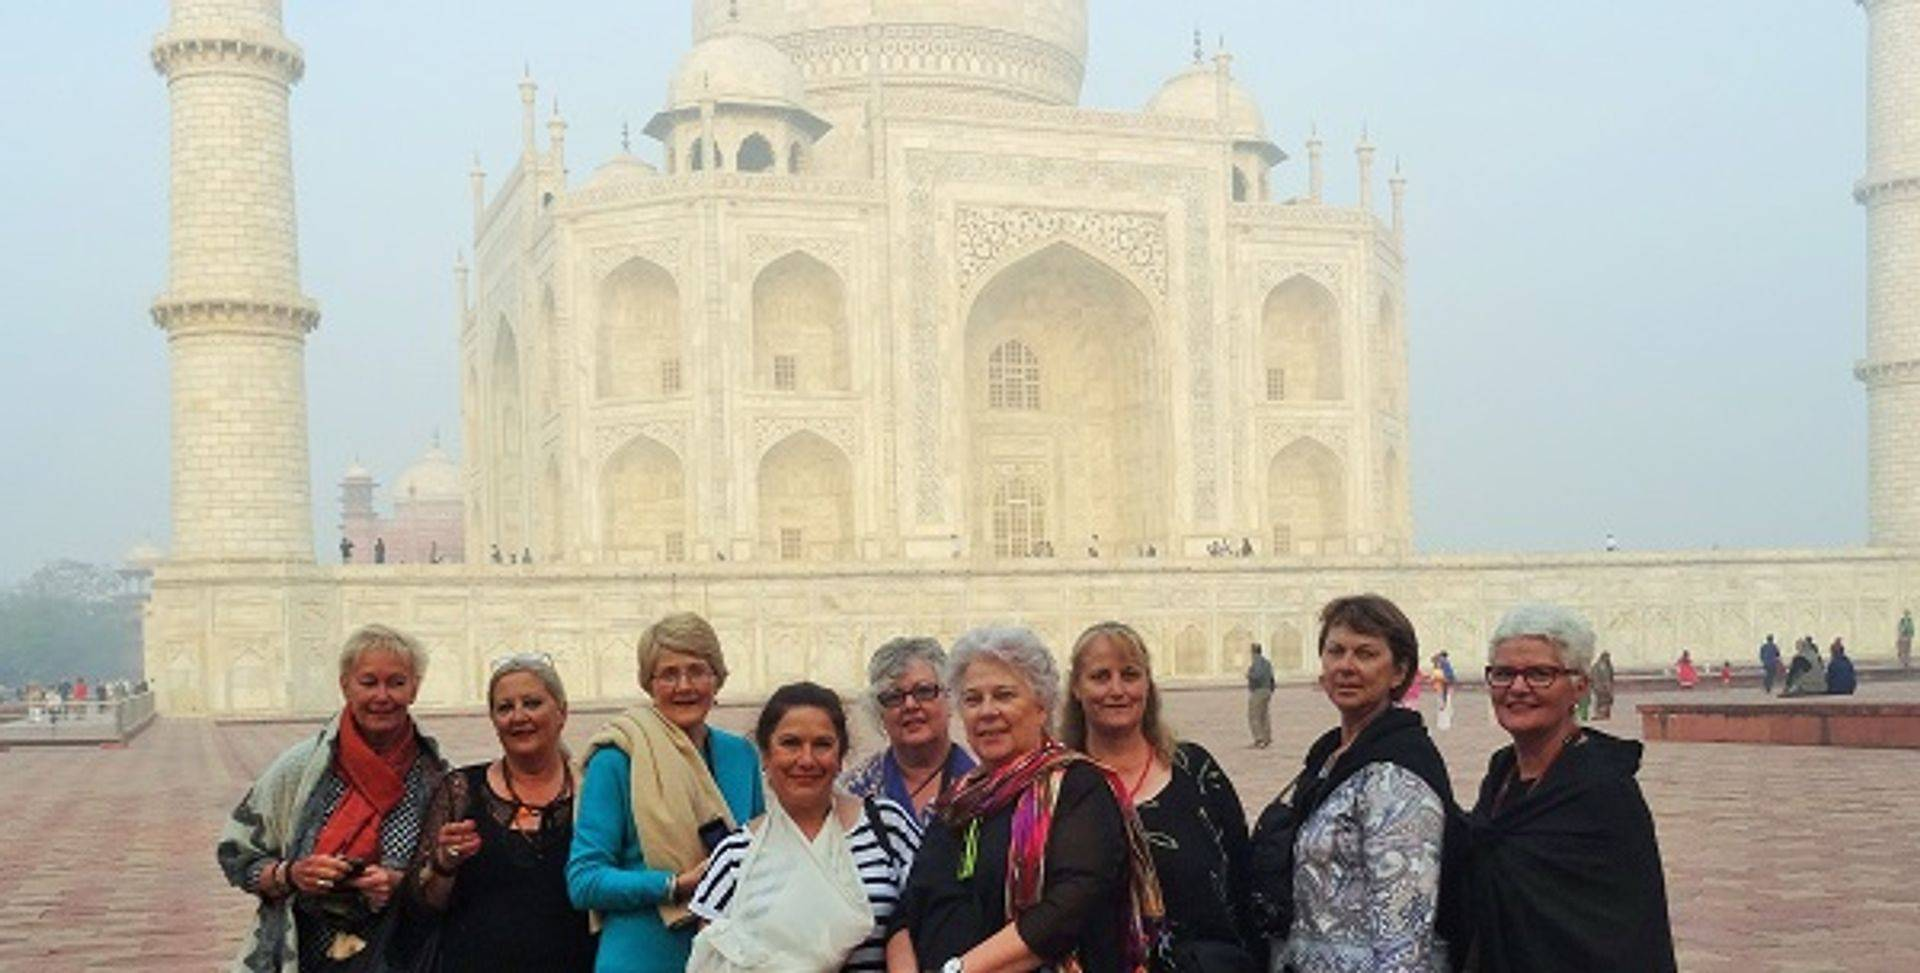 "<img src=""australian womens travel.jpg alt=womens tours, tour group in he morning in front of the taj mahal, india"">"